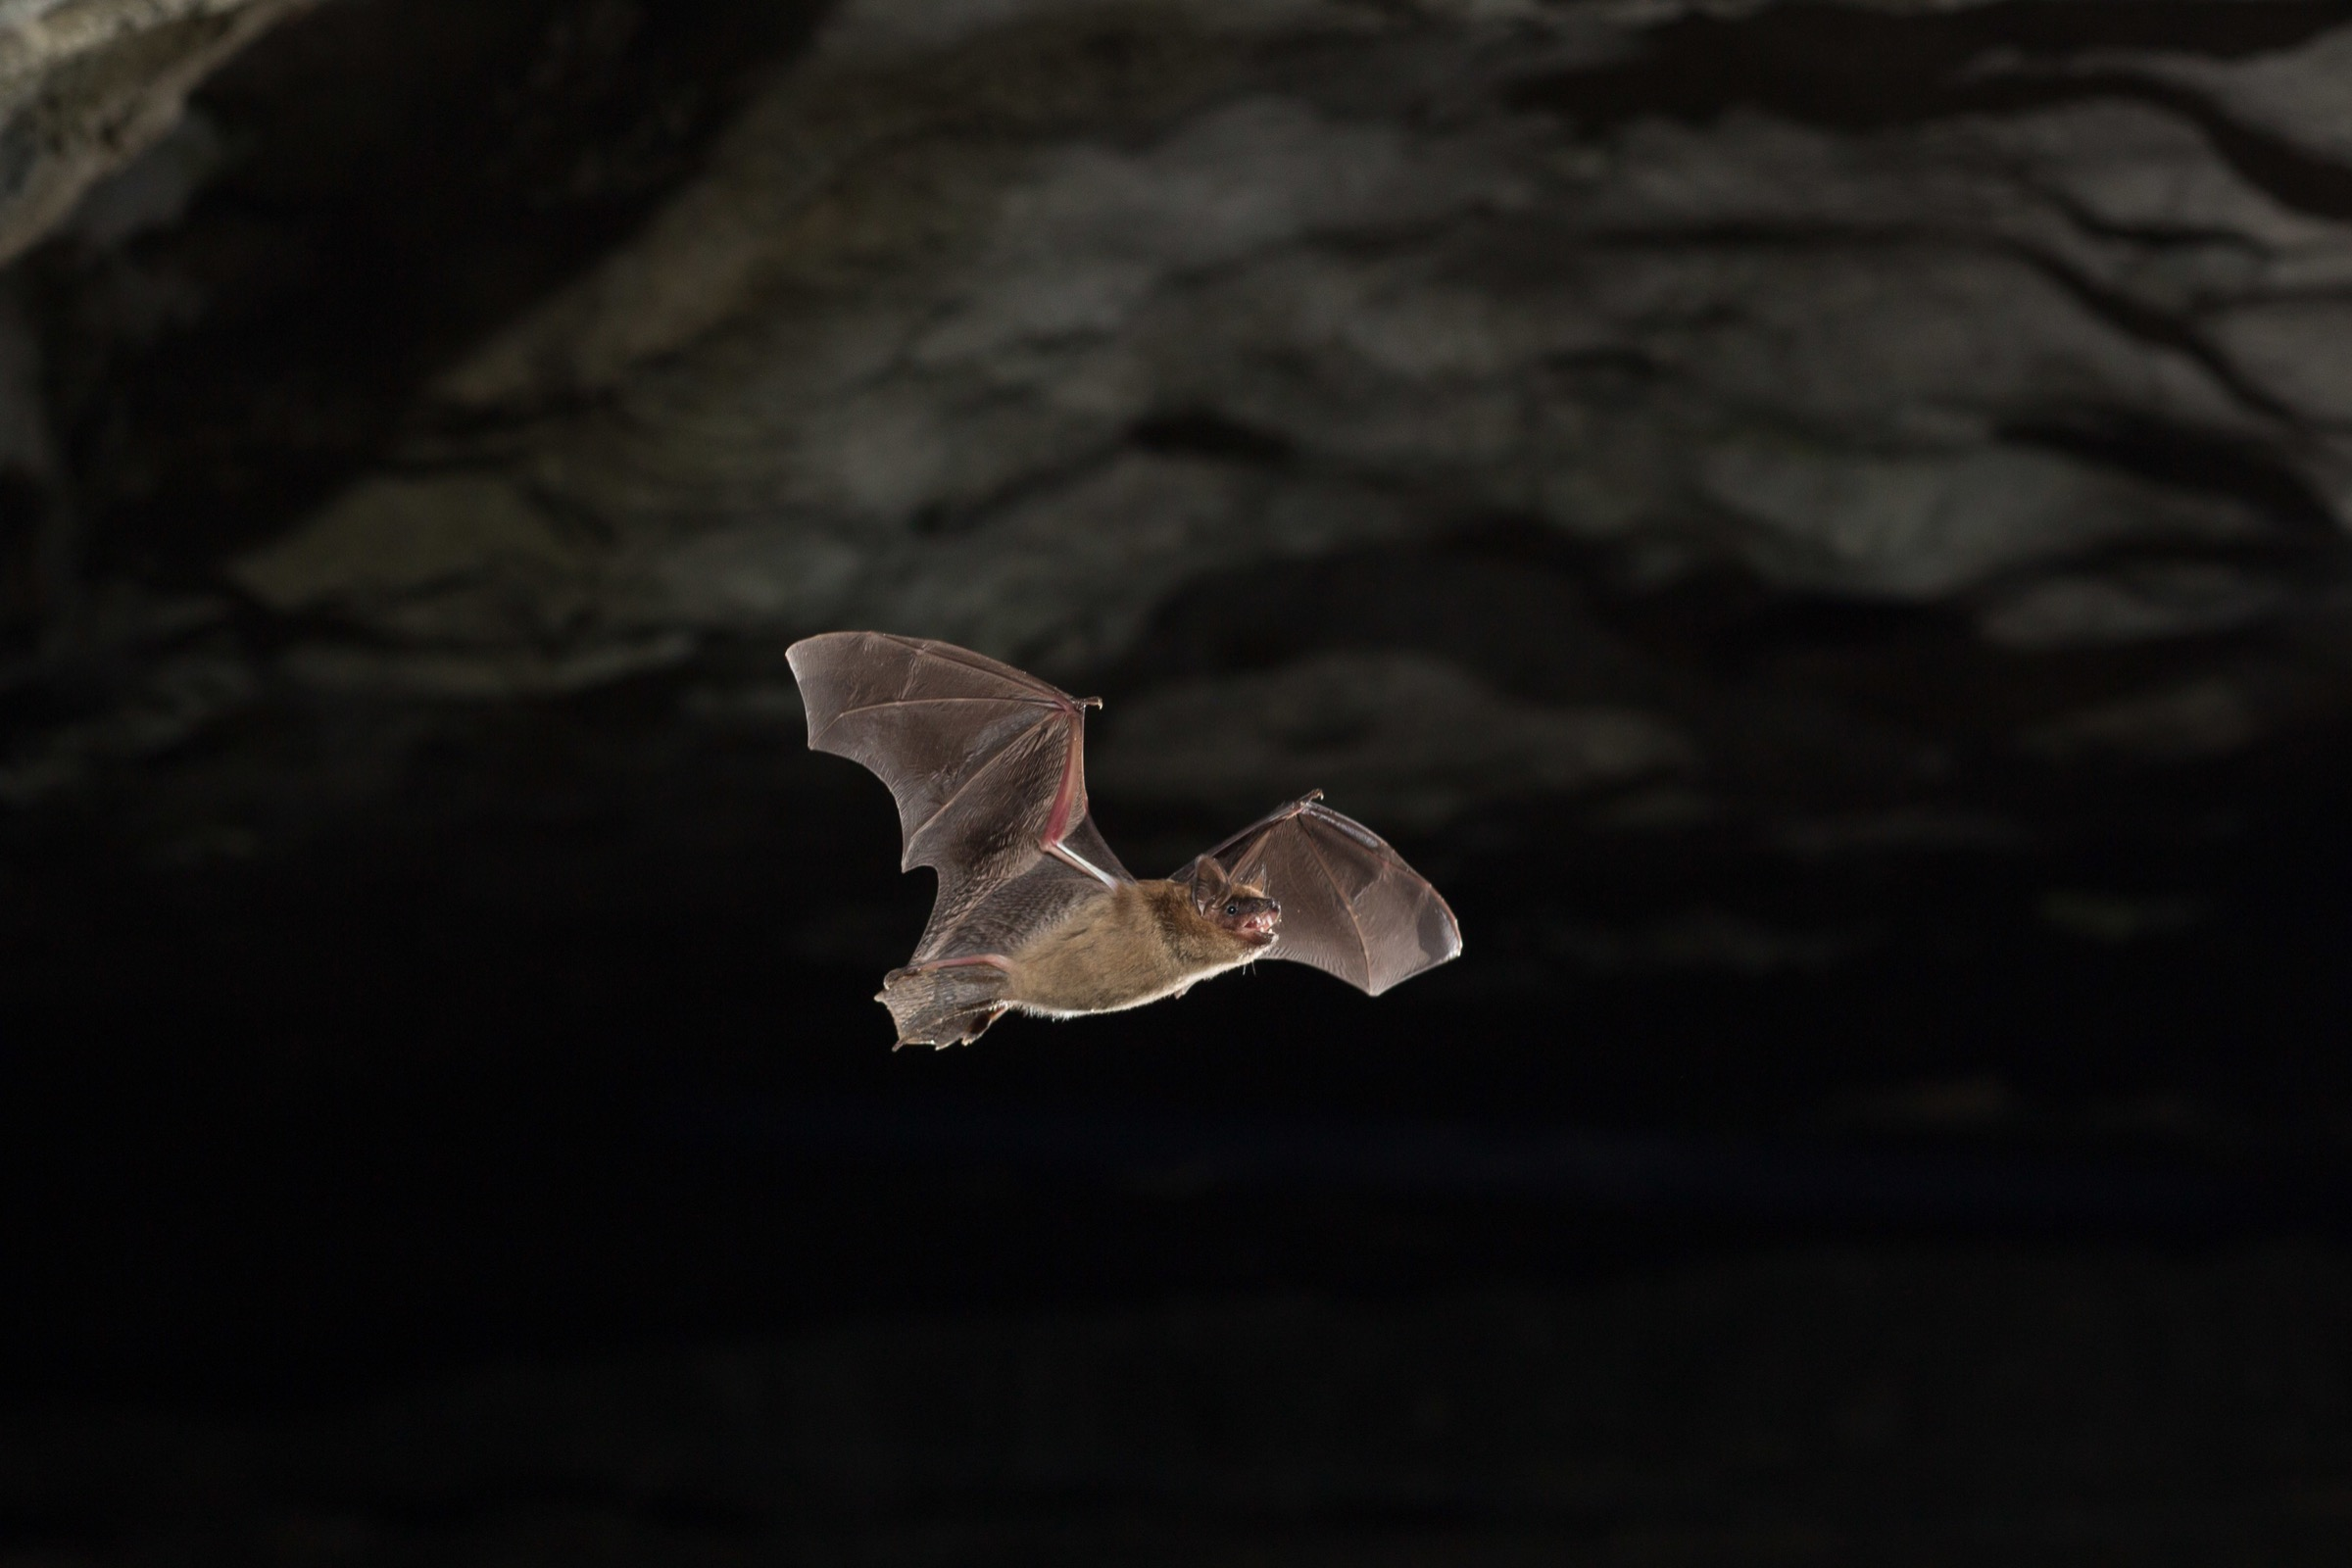 A big brown bat (Eptesicus fuscus) emerges from a cave in Indiana. Photograph by Michael Durham